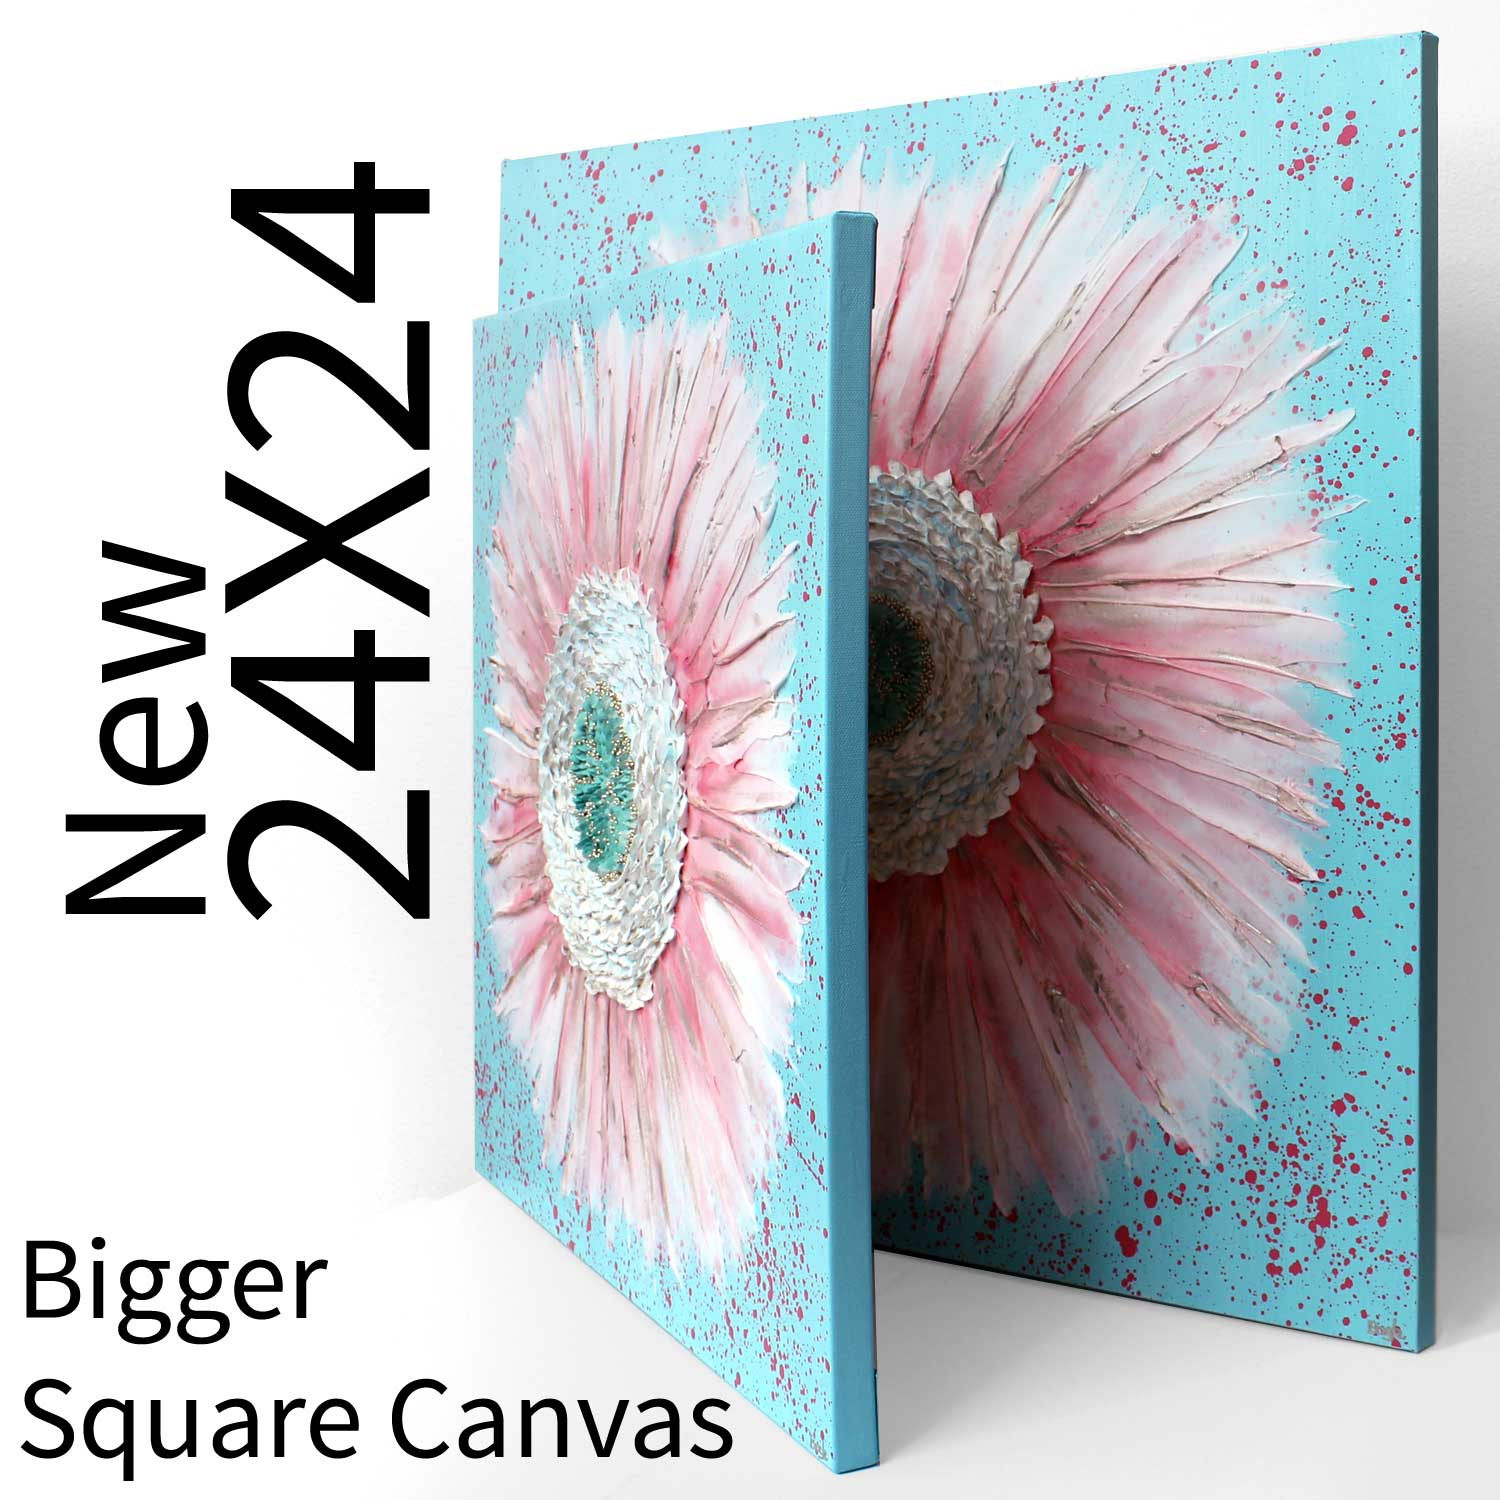 New square canvas size available in 24x24